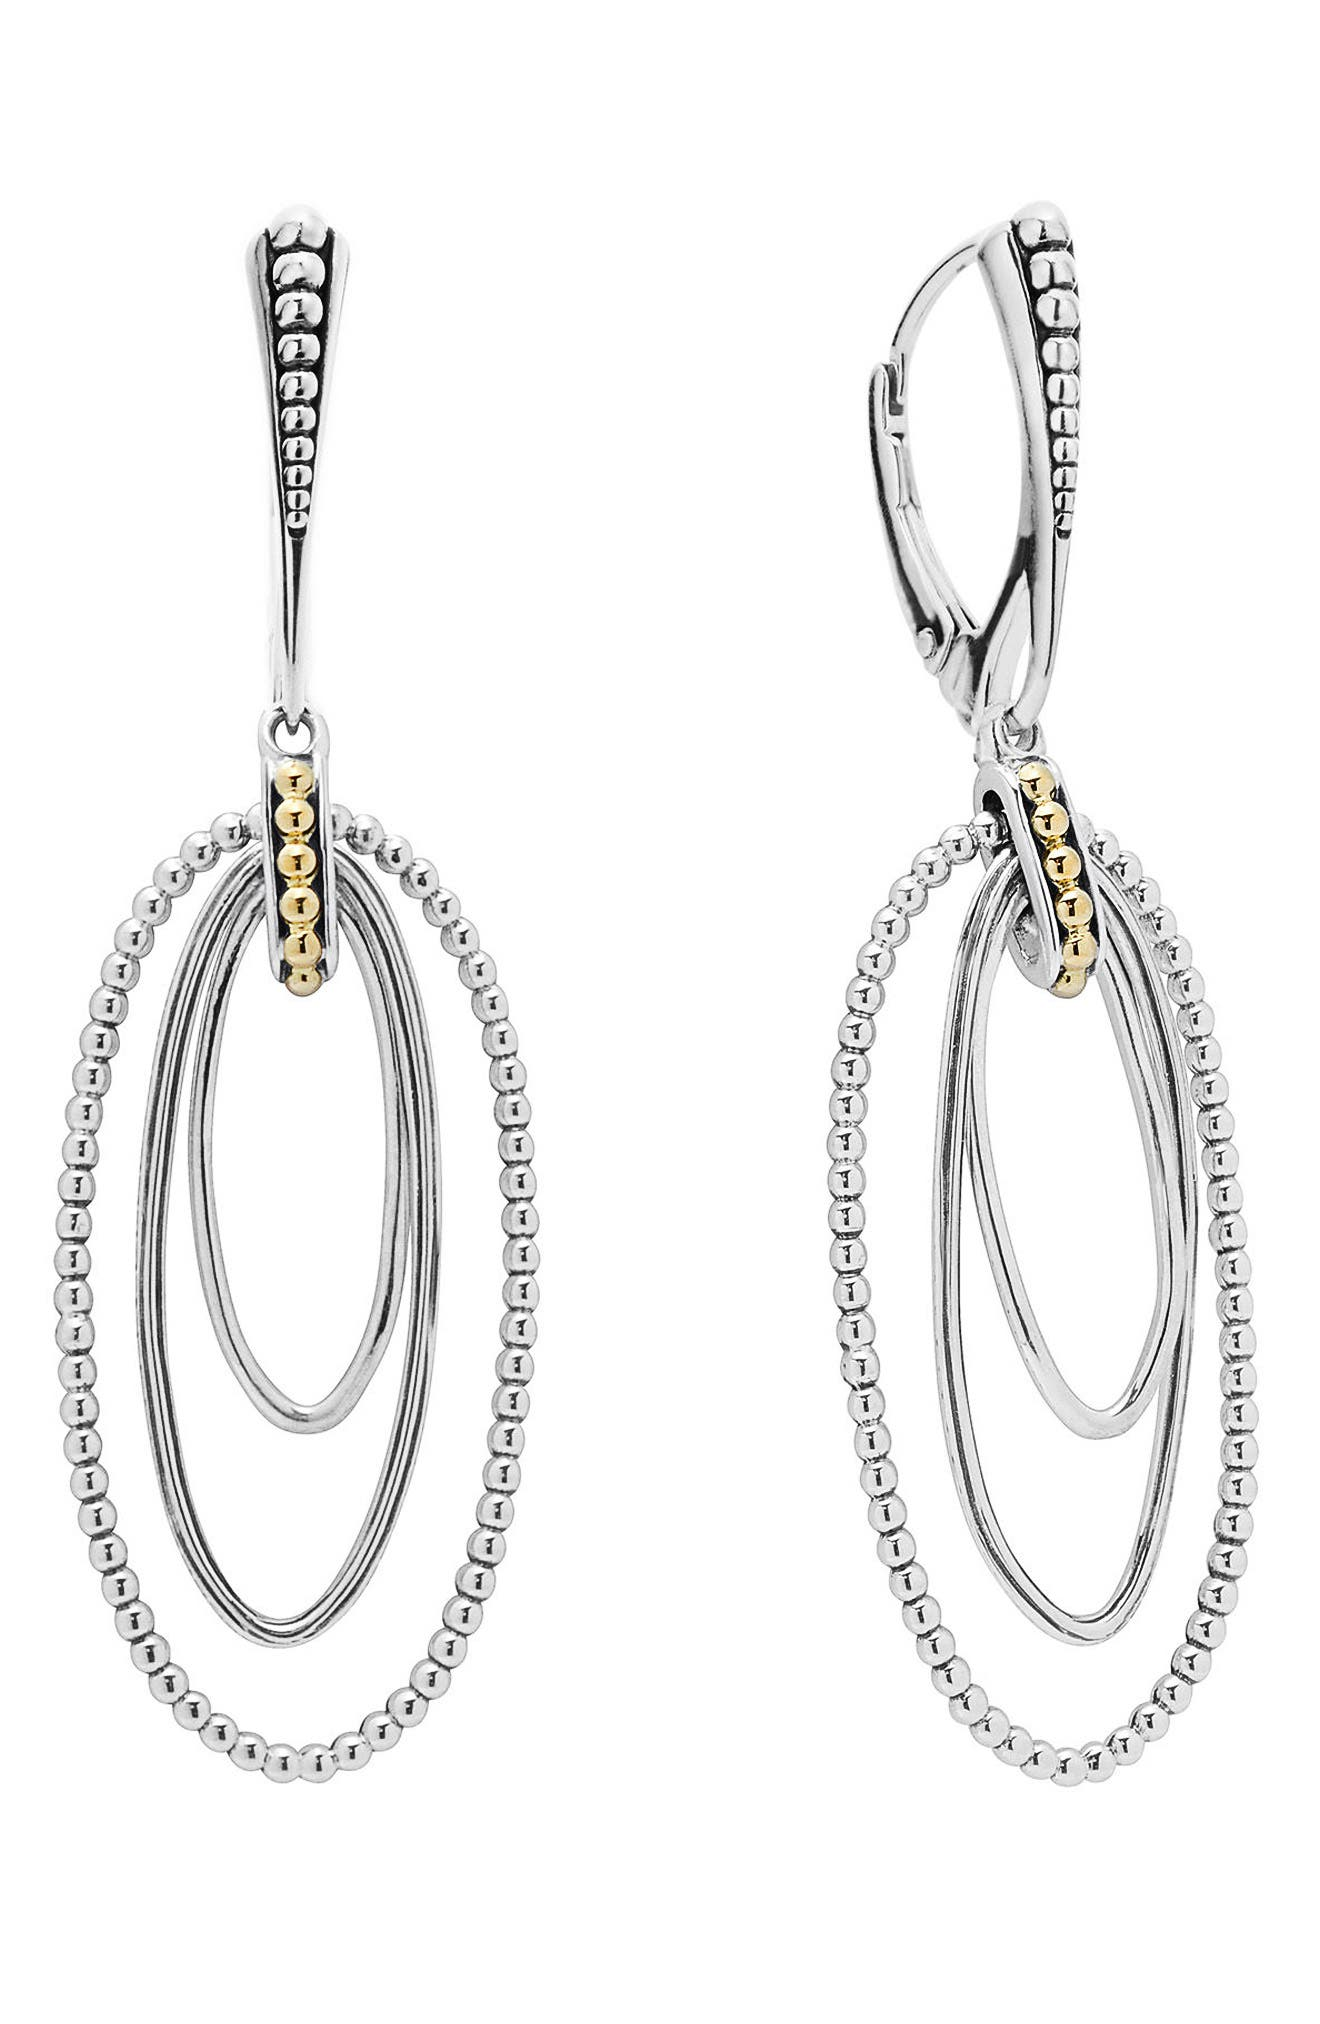 Caviar 'Superfine' Two-Tone Drop Earrings,                             Main thumbnail 1, color,                             SILVER/ GOLD